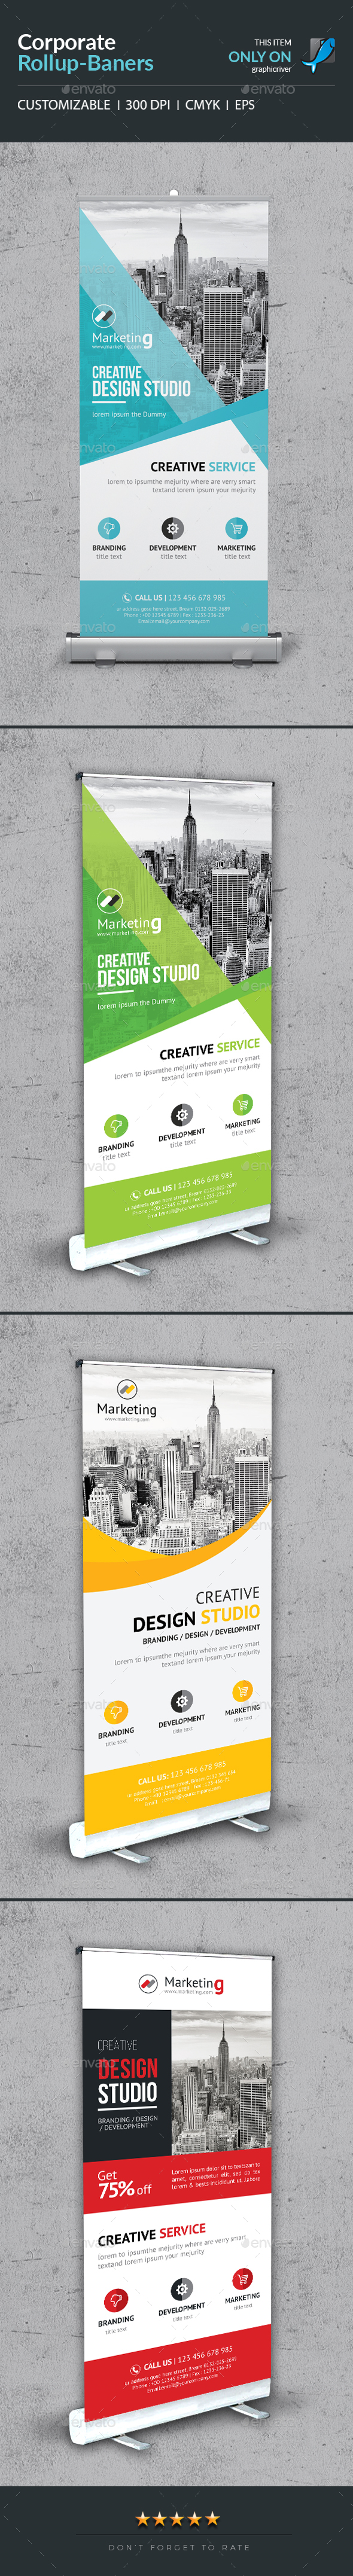 Roll-Up Banner Bundle_3 in 1 - Signage Print Templates